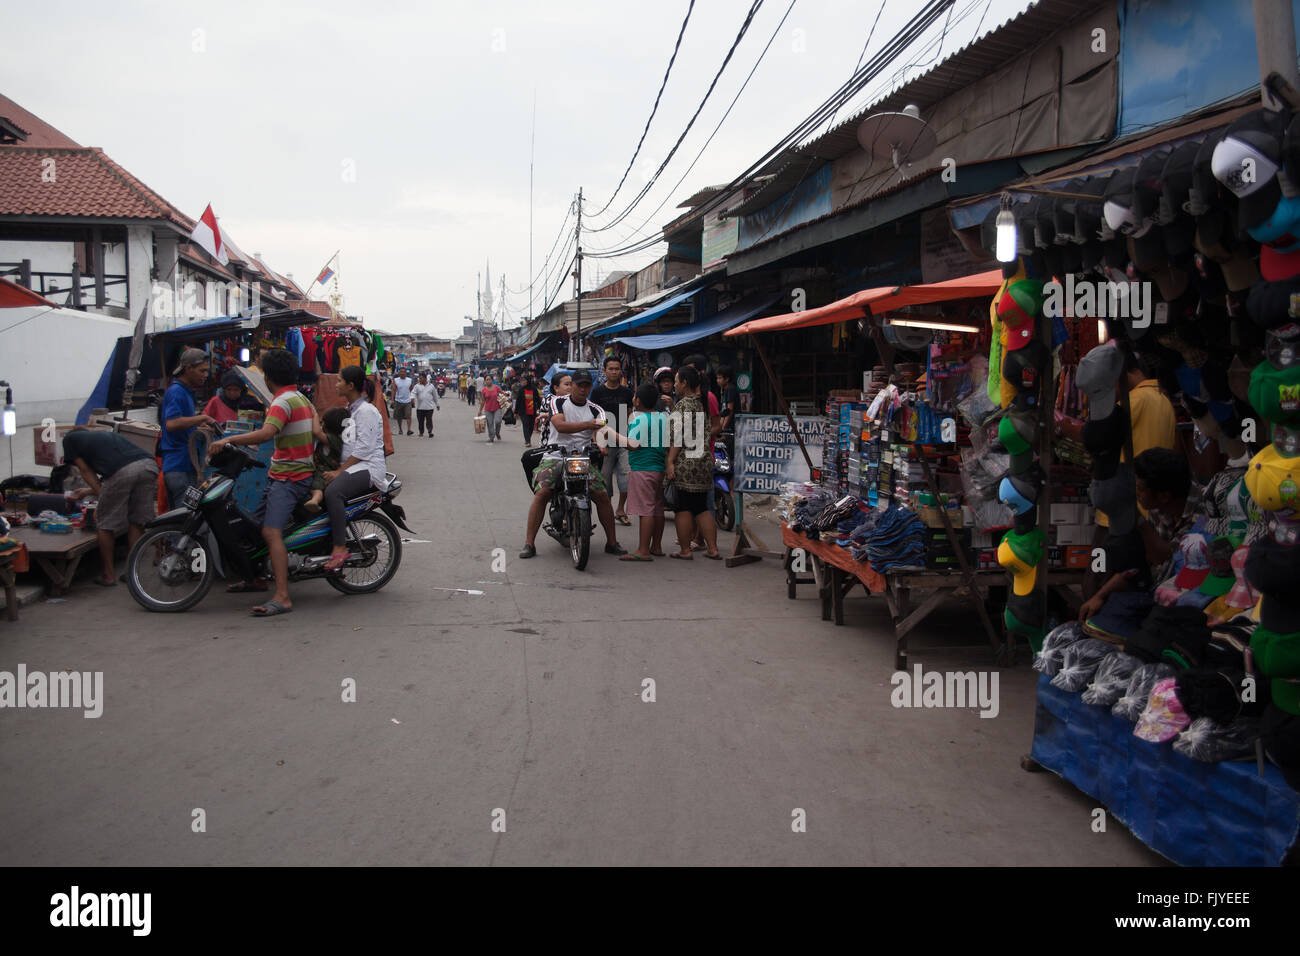 People On Street Market Against Clear Sky - Stock Image